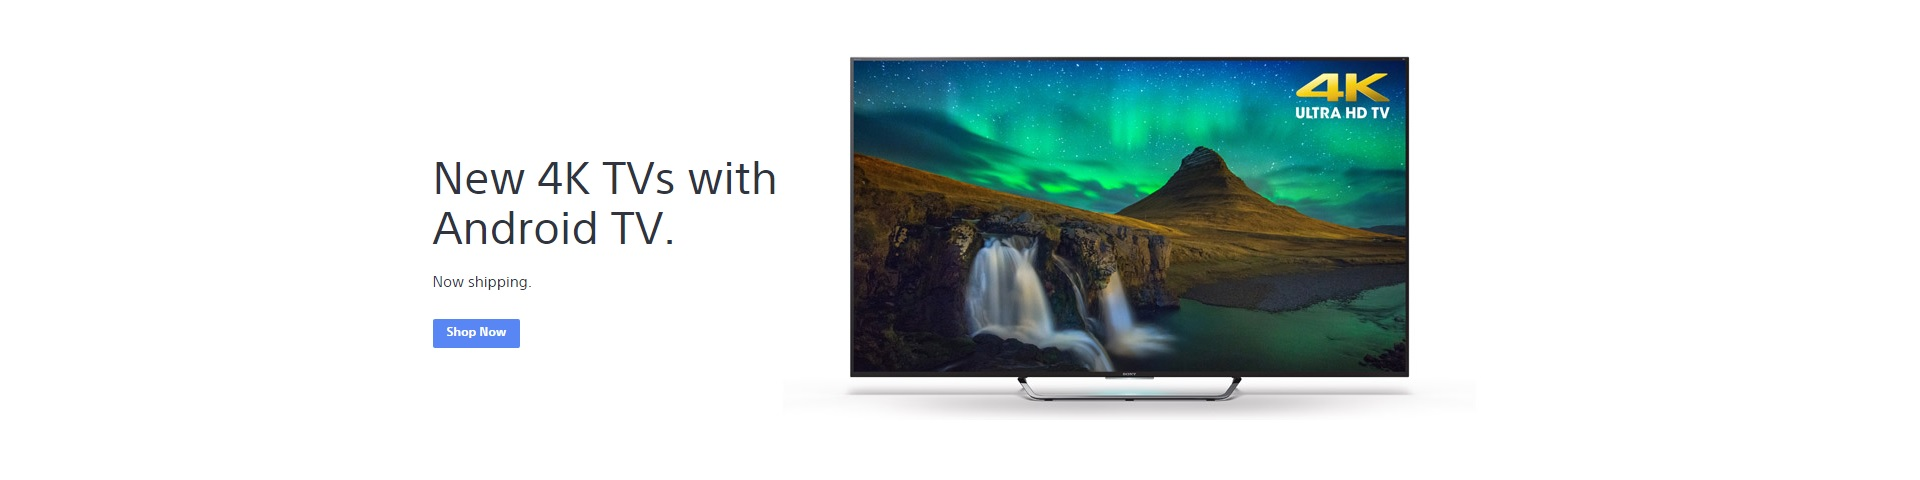 *New 4K TVs with Android TV